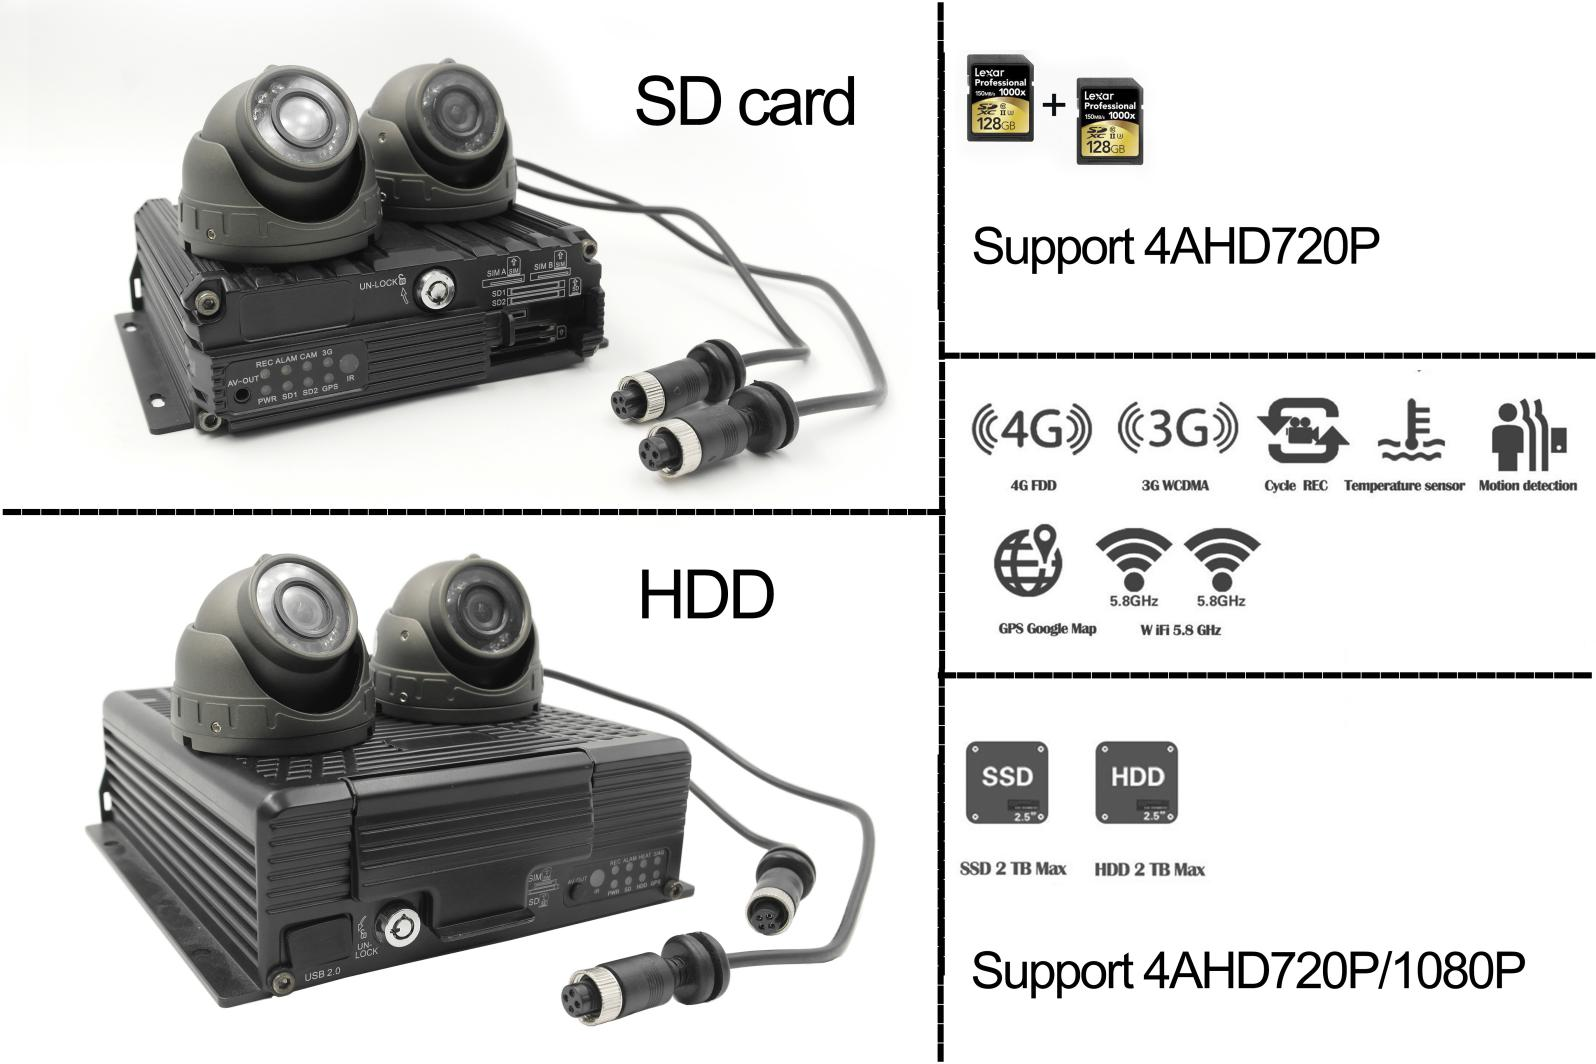 The differences between SD card and HDD in terms of MDVR applications Picture1